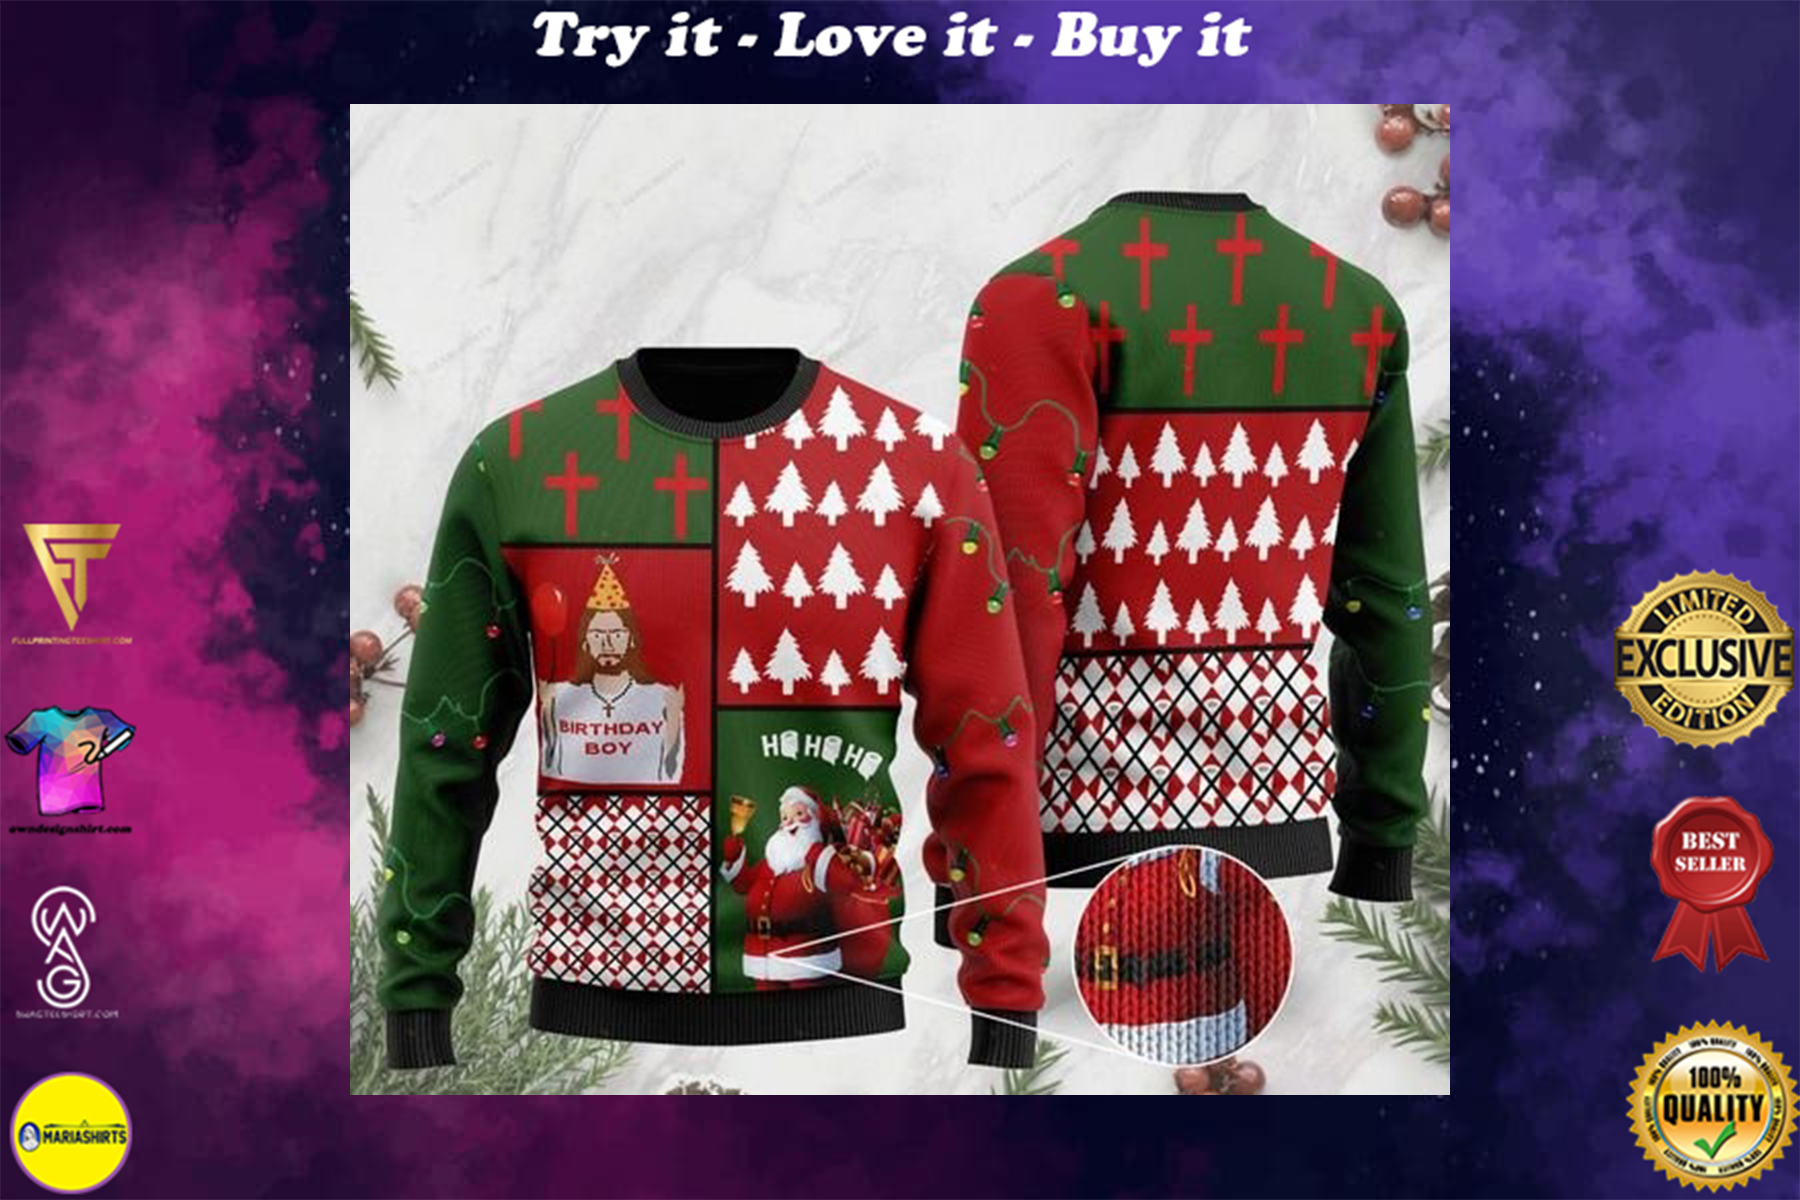 [highest selling] Jesus birthday boy and santa claus ho ho ho with toilet paper full printing ugly sweater - maria